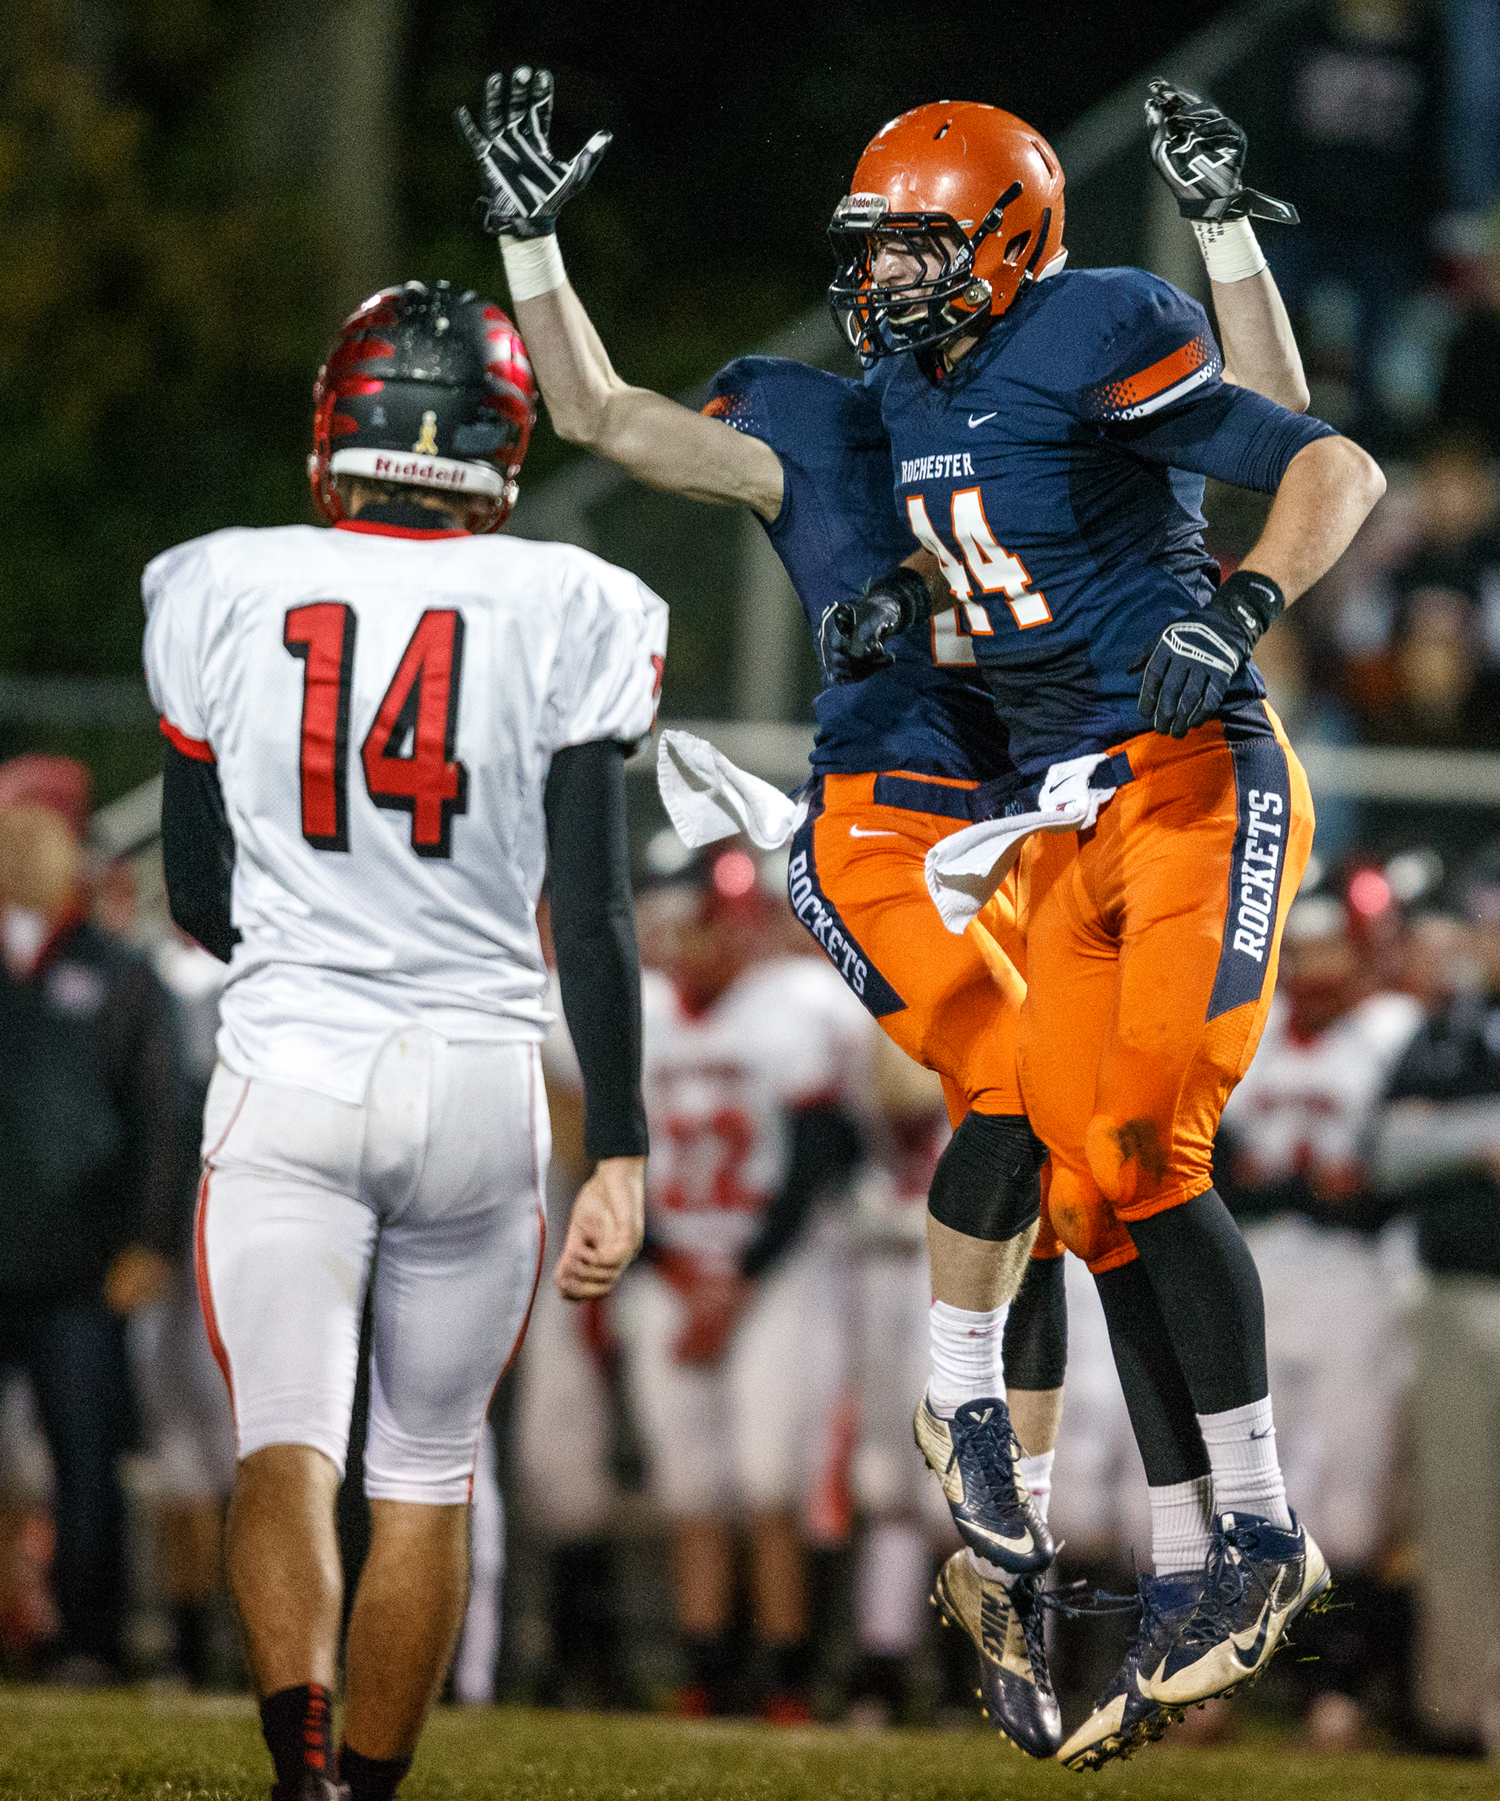 Rochester's Adam Conrady (44) and Dallas Greer (7) celebrate after a pass from Mt. Zion quarterback Payton Grinestaff (14) is knocked down in the first half during the first round of the Class 4A playoffs at Rocket Booster Field, Saturday, Nov. 1, 2014, in Rochester, Ill.   Justin L. Fowler/The State Journal-Register